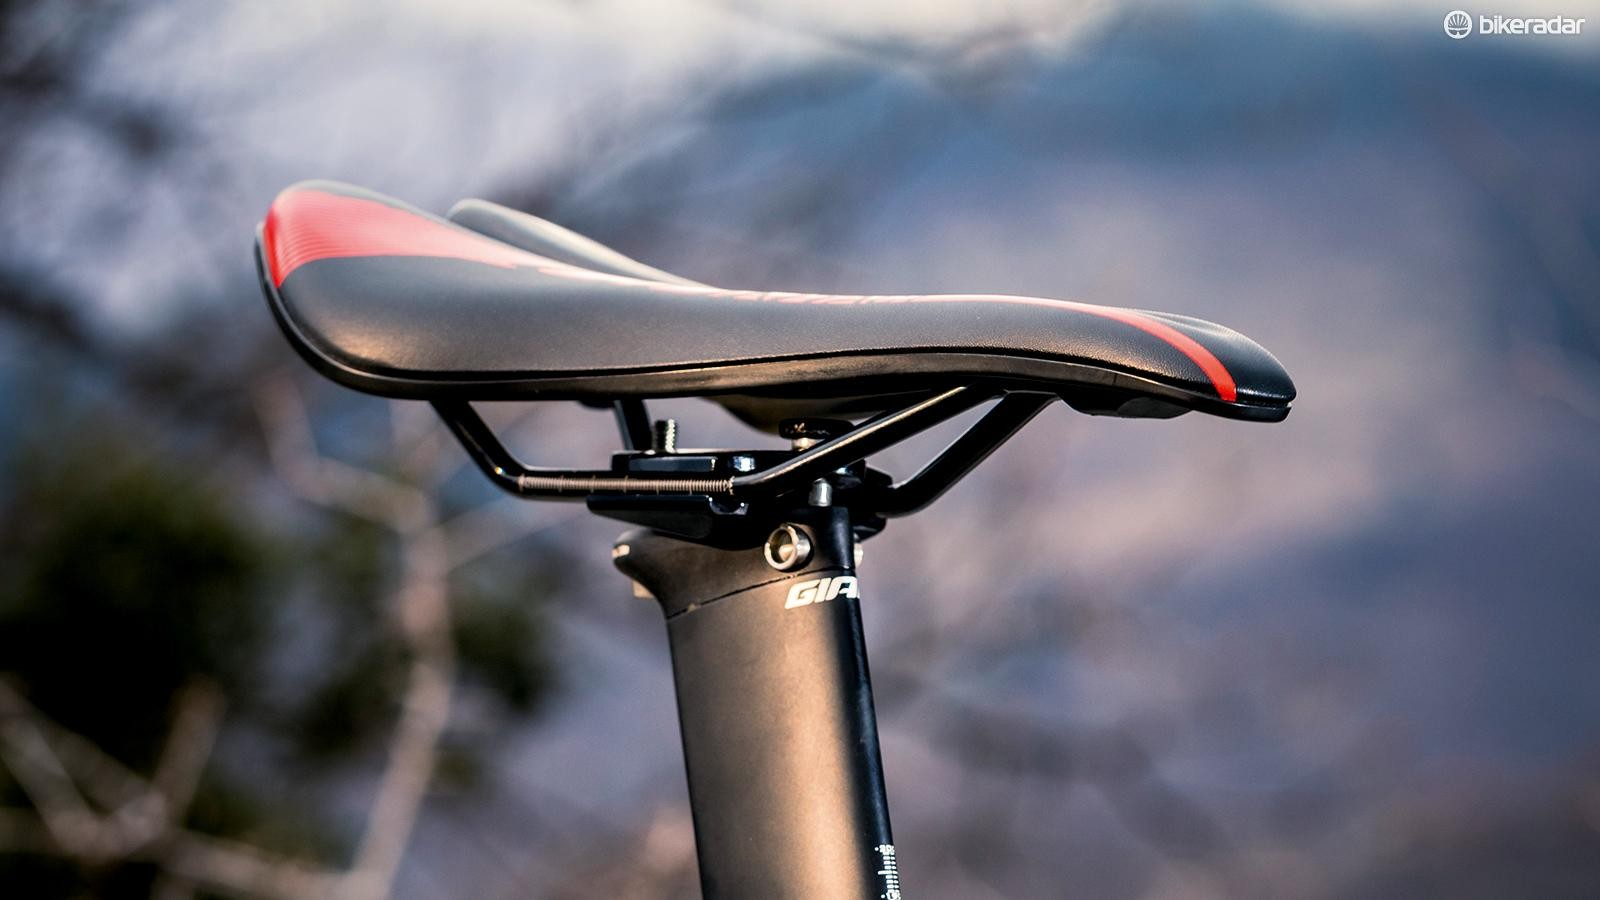 Own-brand kit extends to the Giant Contact saddle